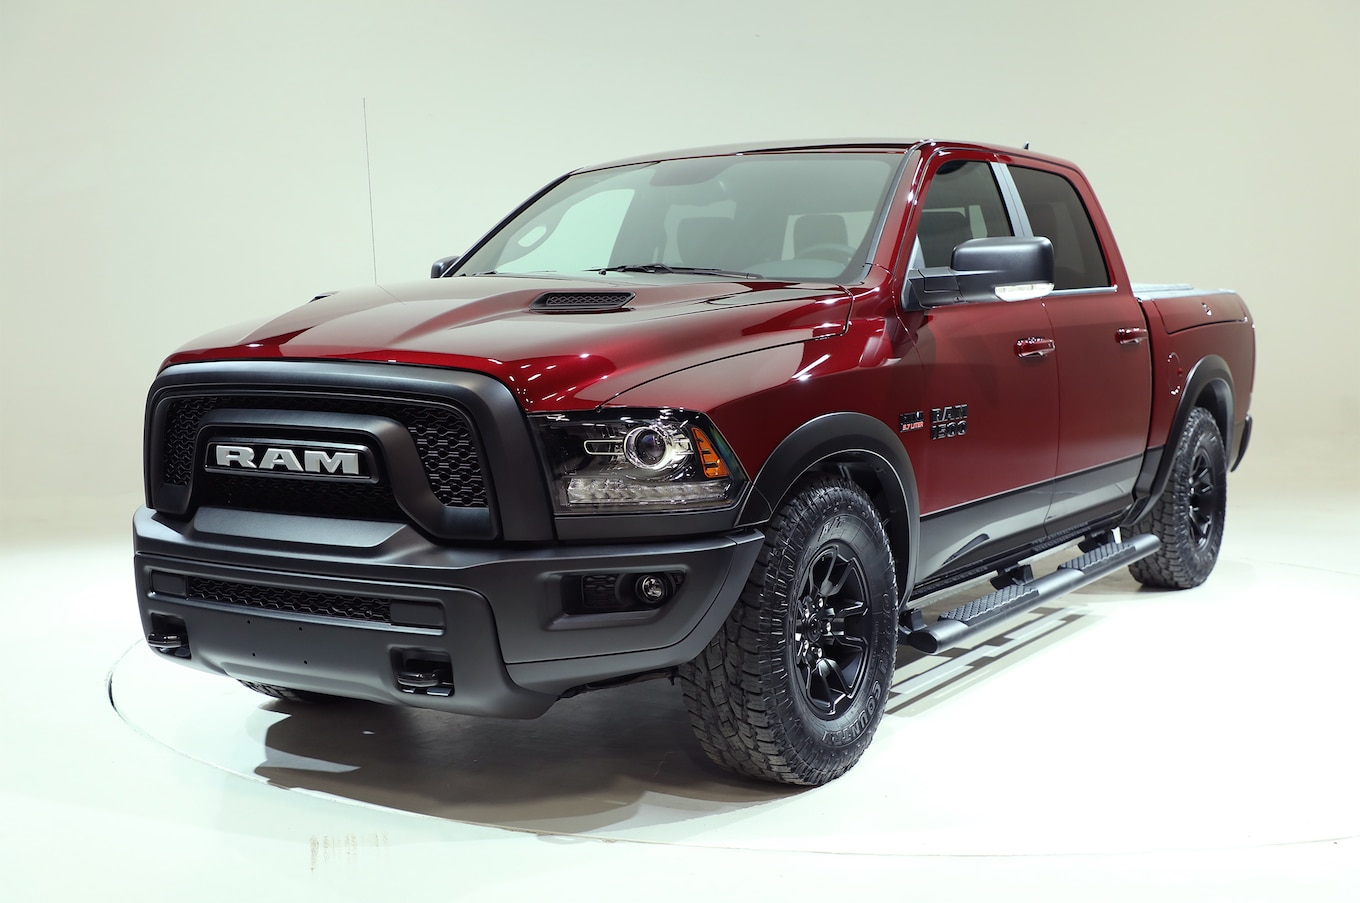 Ram Spices Up 1500 Rebel With New Delmonico Red Paint